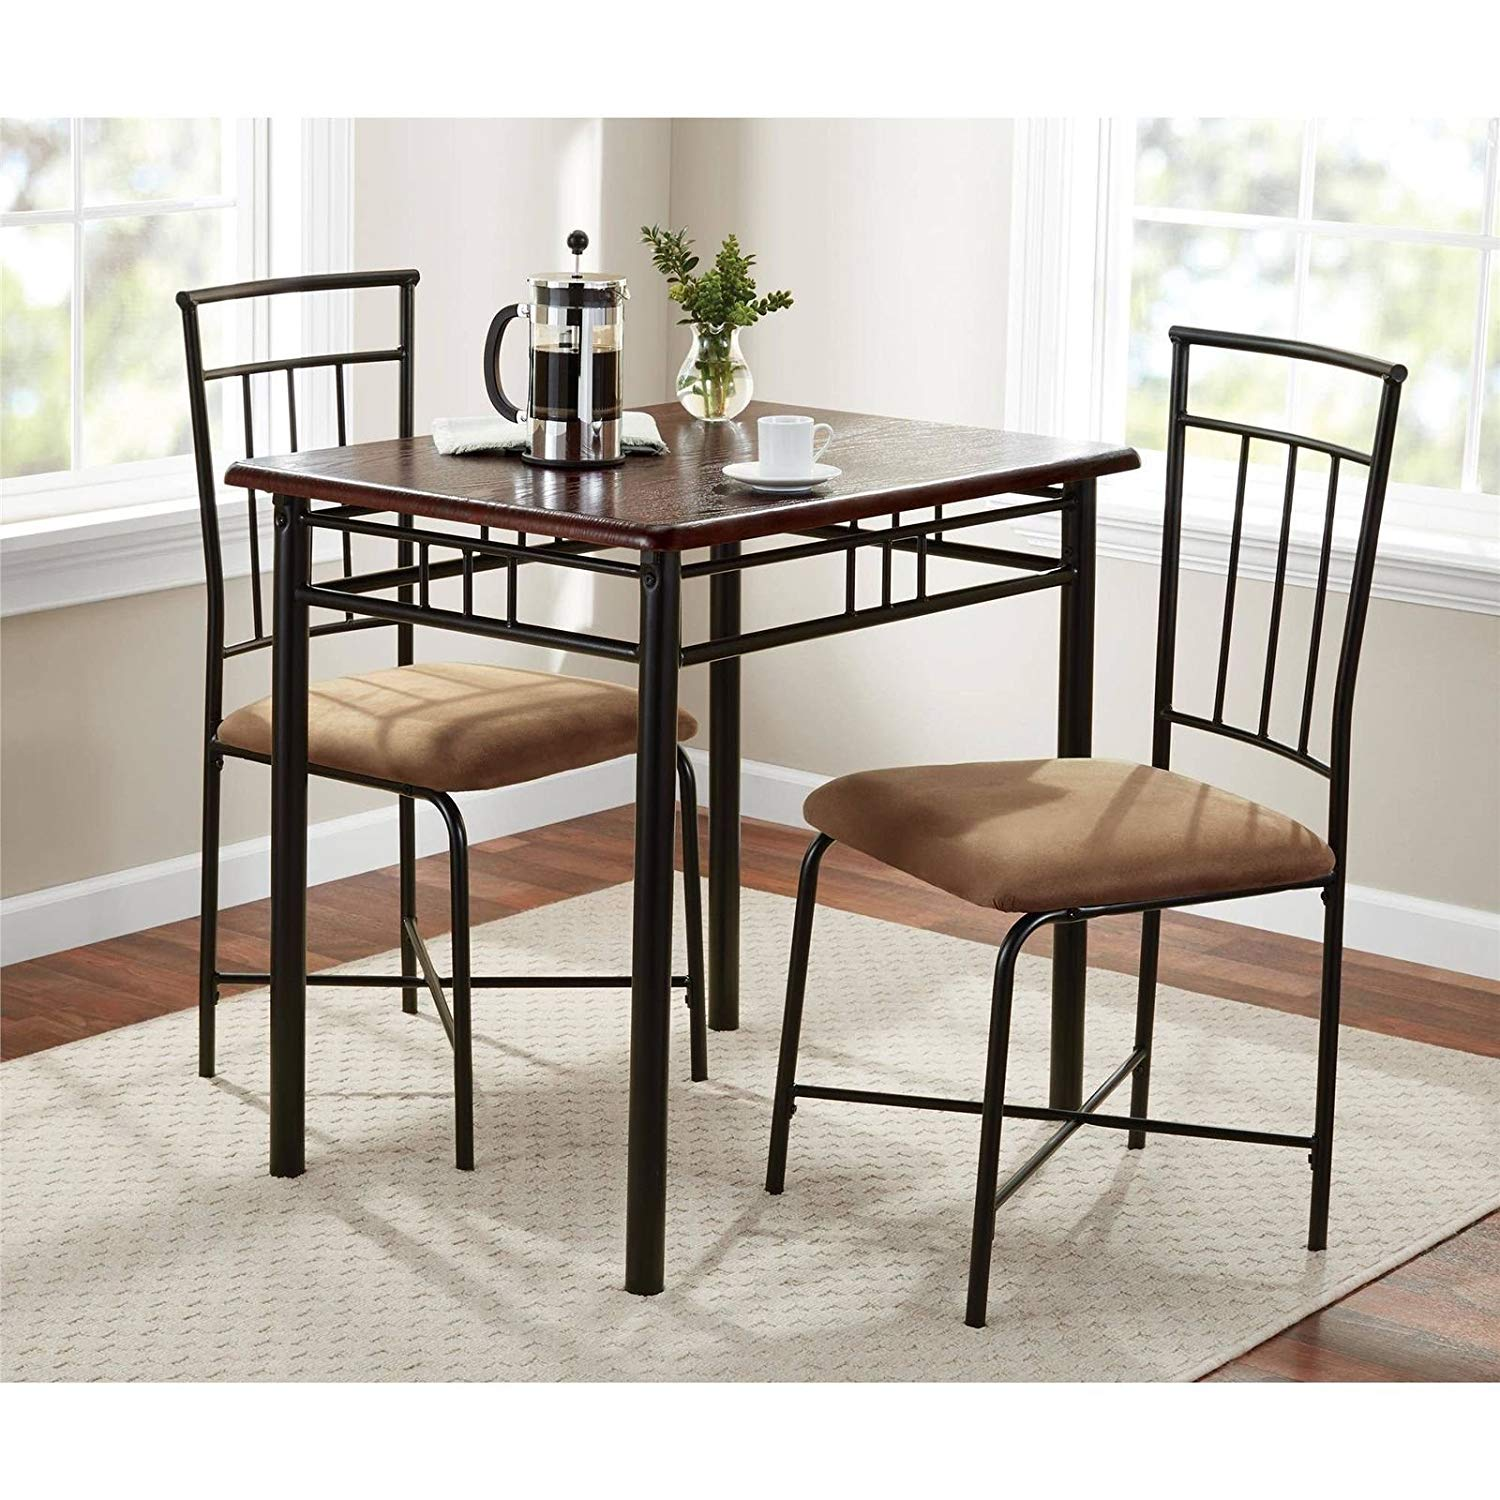 small kitchen table counter height and chairs cheap dining metal find deals on line at get quotations walnut 3 piece set bistro breakfast furniture